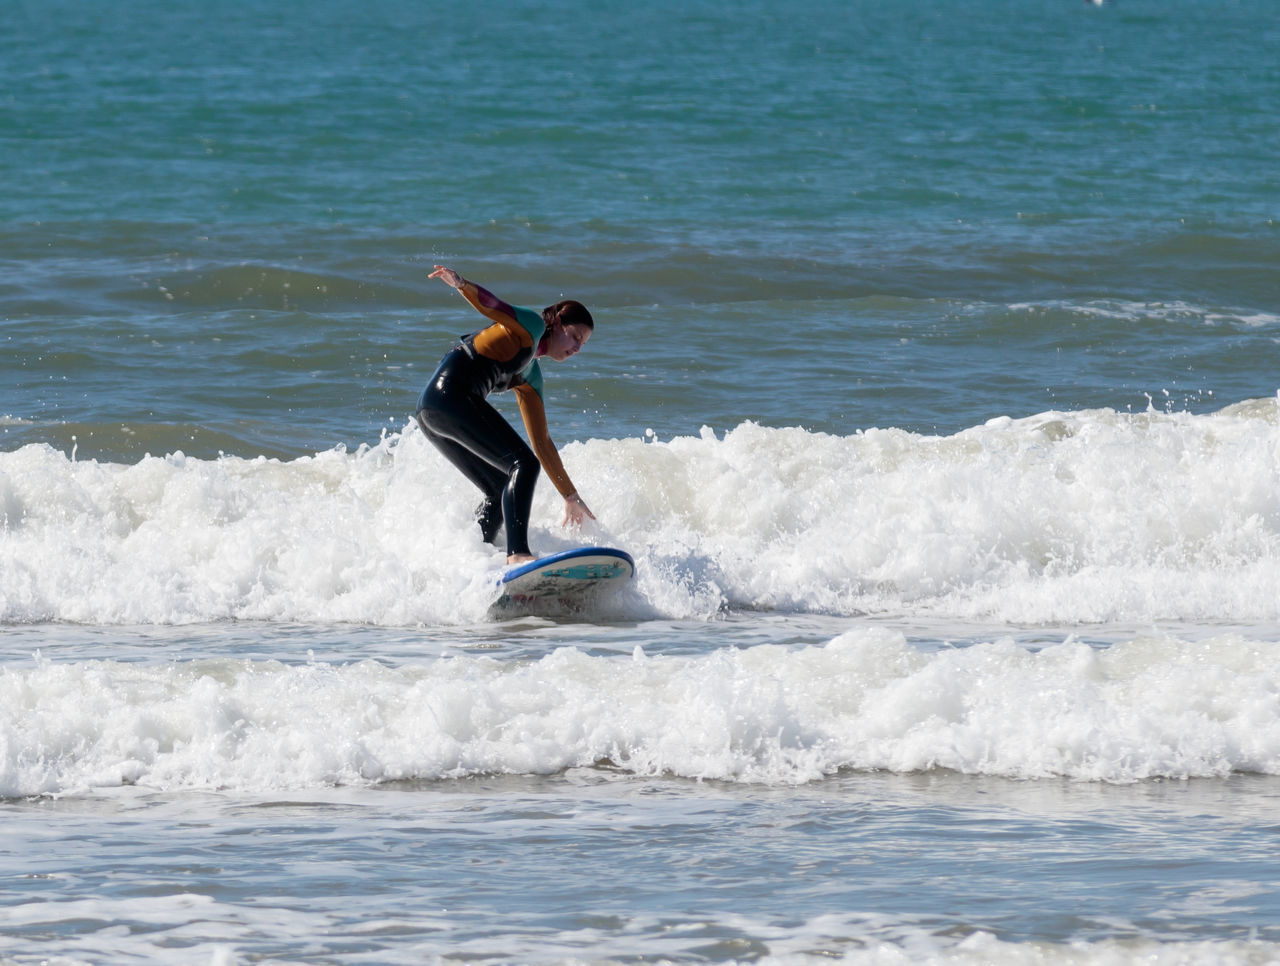 Acre, Israel - March 04, 2017 : Girl in a color waterproof suit exercising in surfing on the board in the Mediterranean sea in Acre beach, Israel Acco Acre Action Active Adventure Beach Beautiful Board Exercise Extreme Girl Holiday Israel Learn Outdoors People Sea Sport Surfing Swim Travel Vacation Water Wave Woman